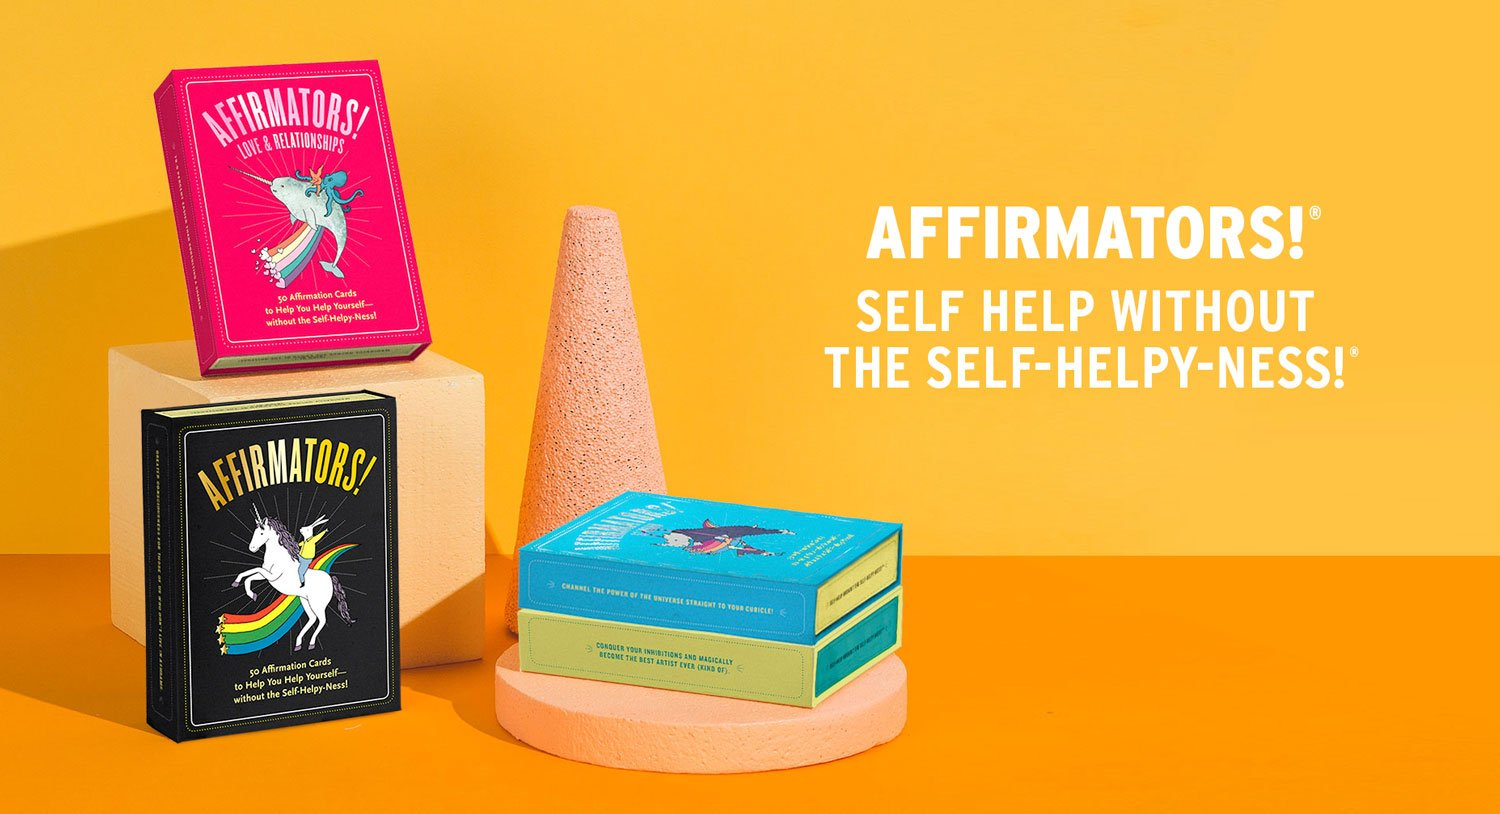 Afffirmators Self Help without the Self-Helpy-Ness